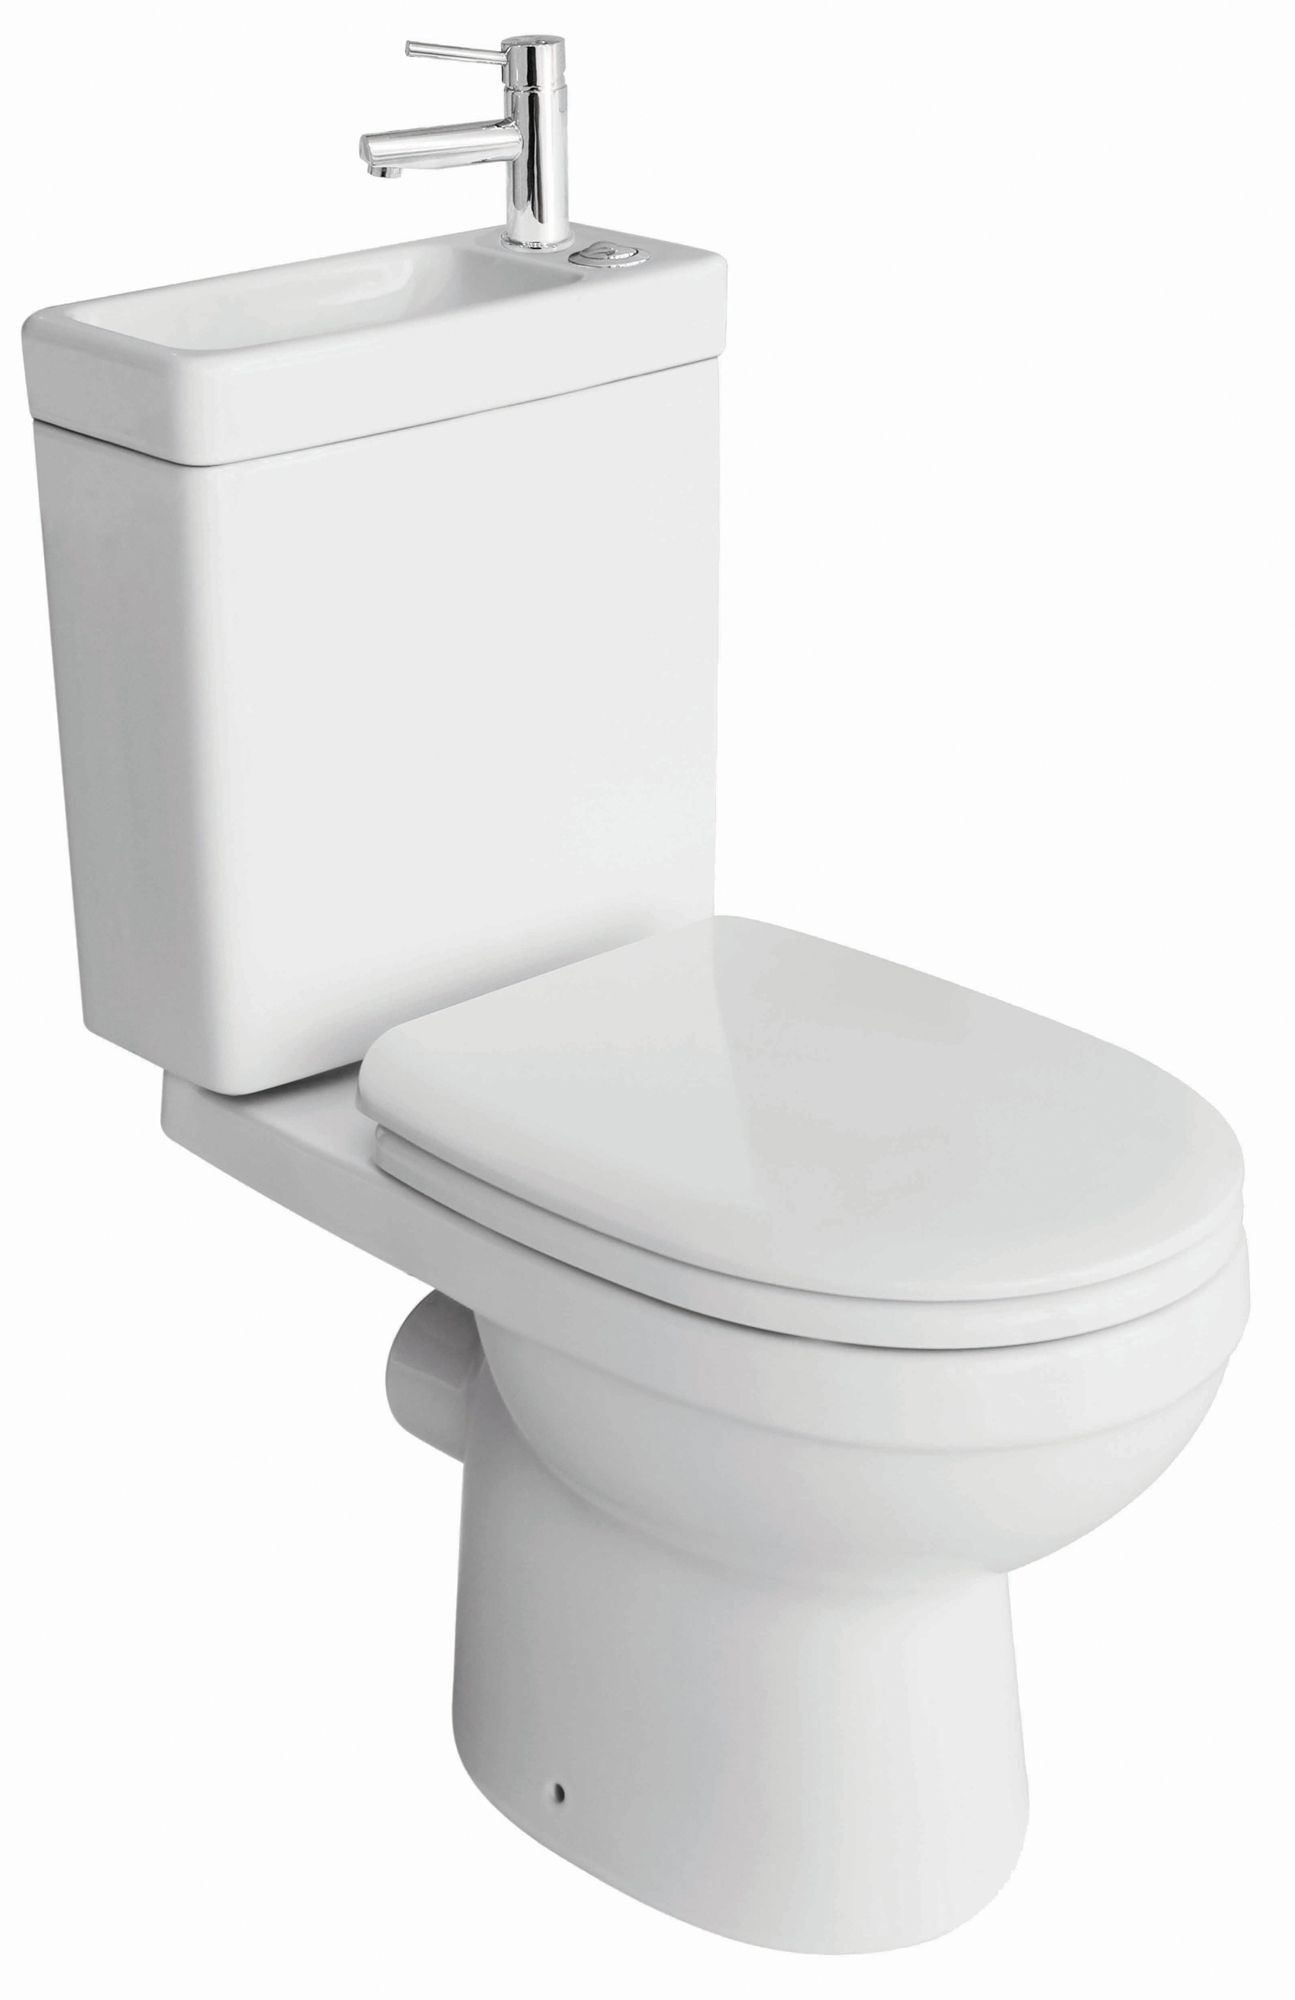 Cooke amp Lewis Duetto Close Coupled Toilet with Integrated Basin with Soft  Close Seat Departments DIY at B amp Q